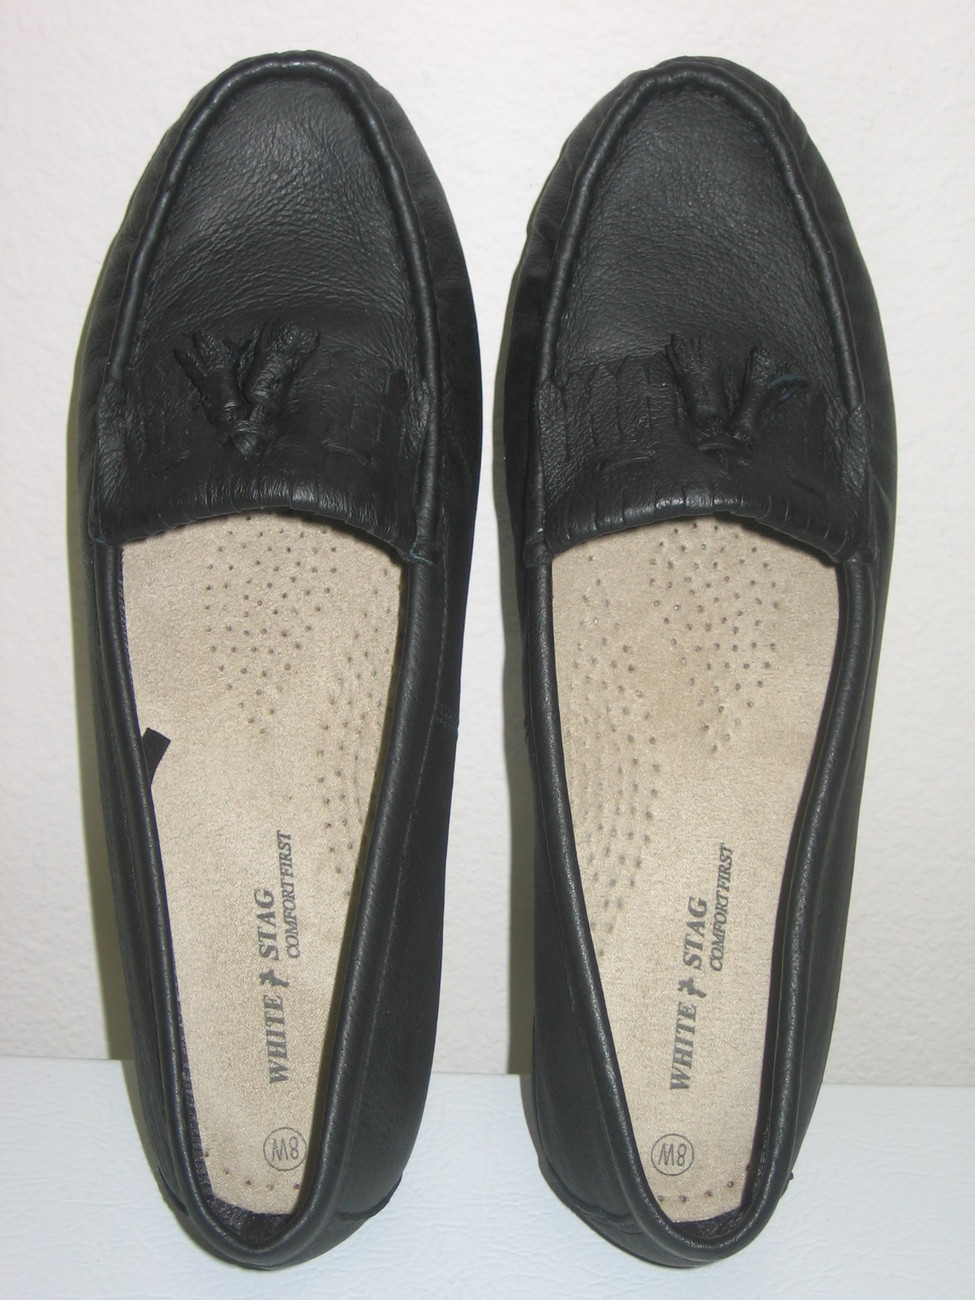 White Stag Comfort First Shoes